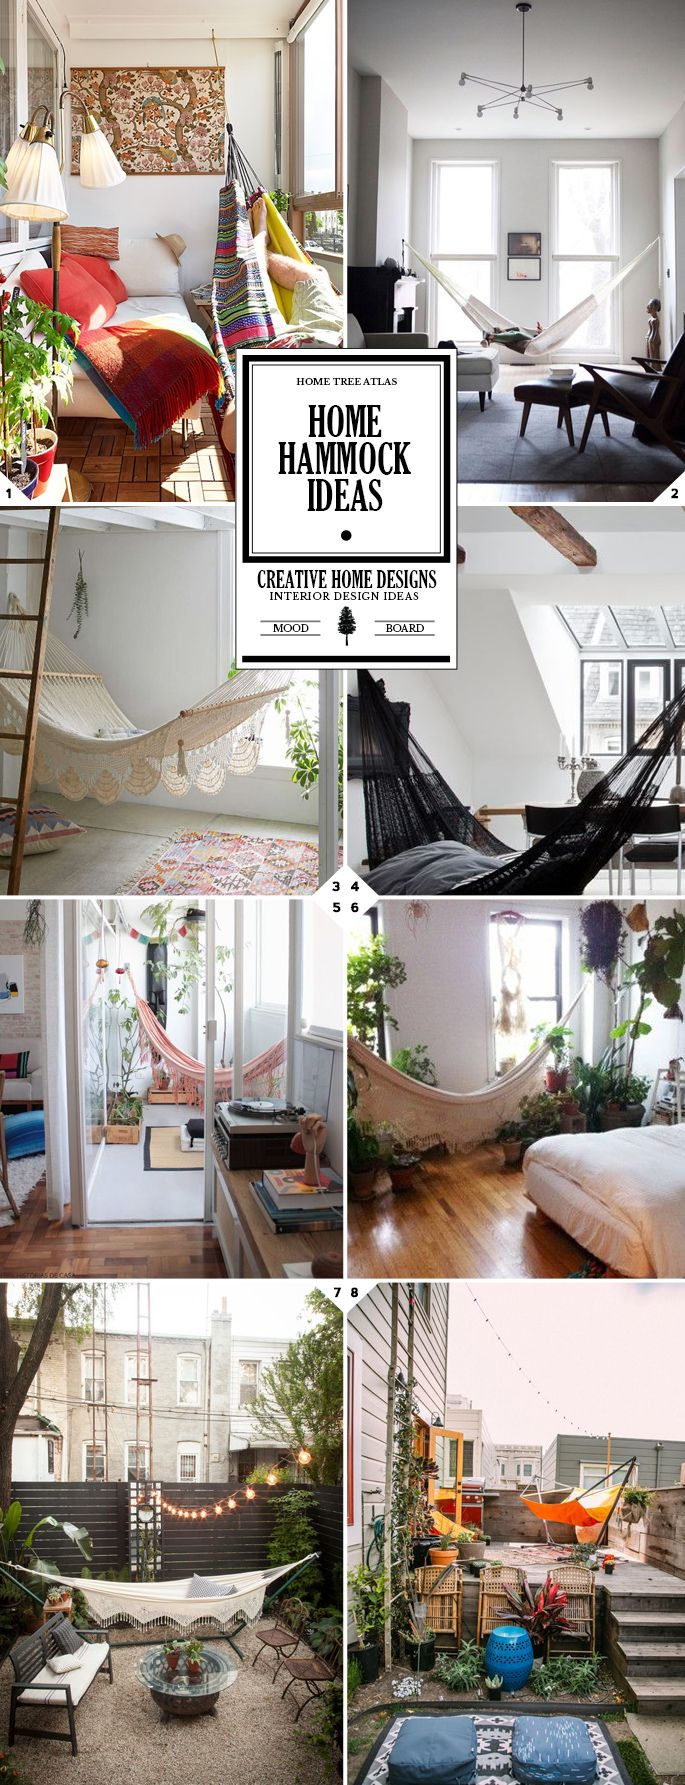 Best 25 hammock ideas ideas on pinterest wooden hammock for Diy bedroom hammock